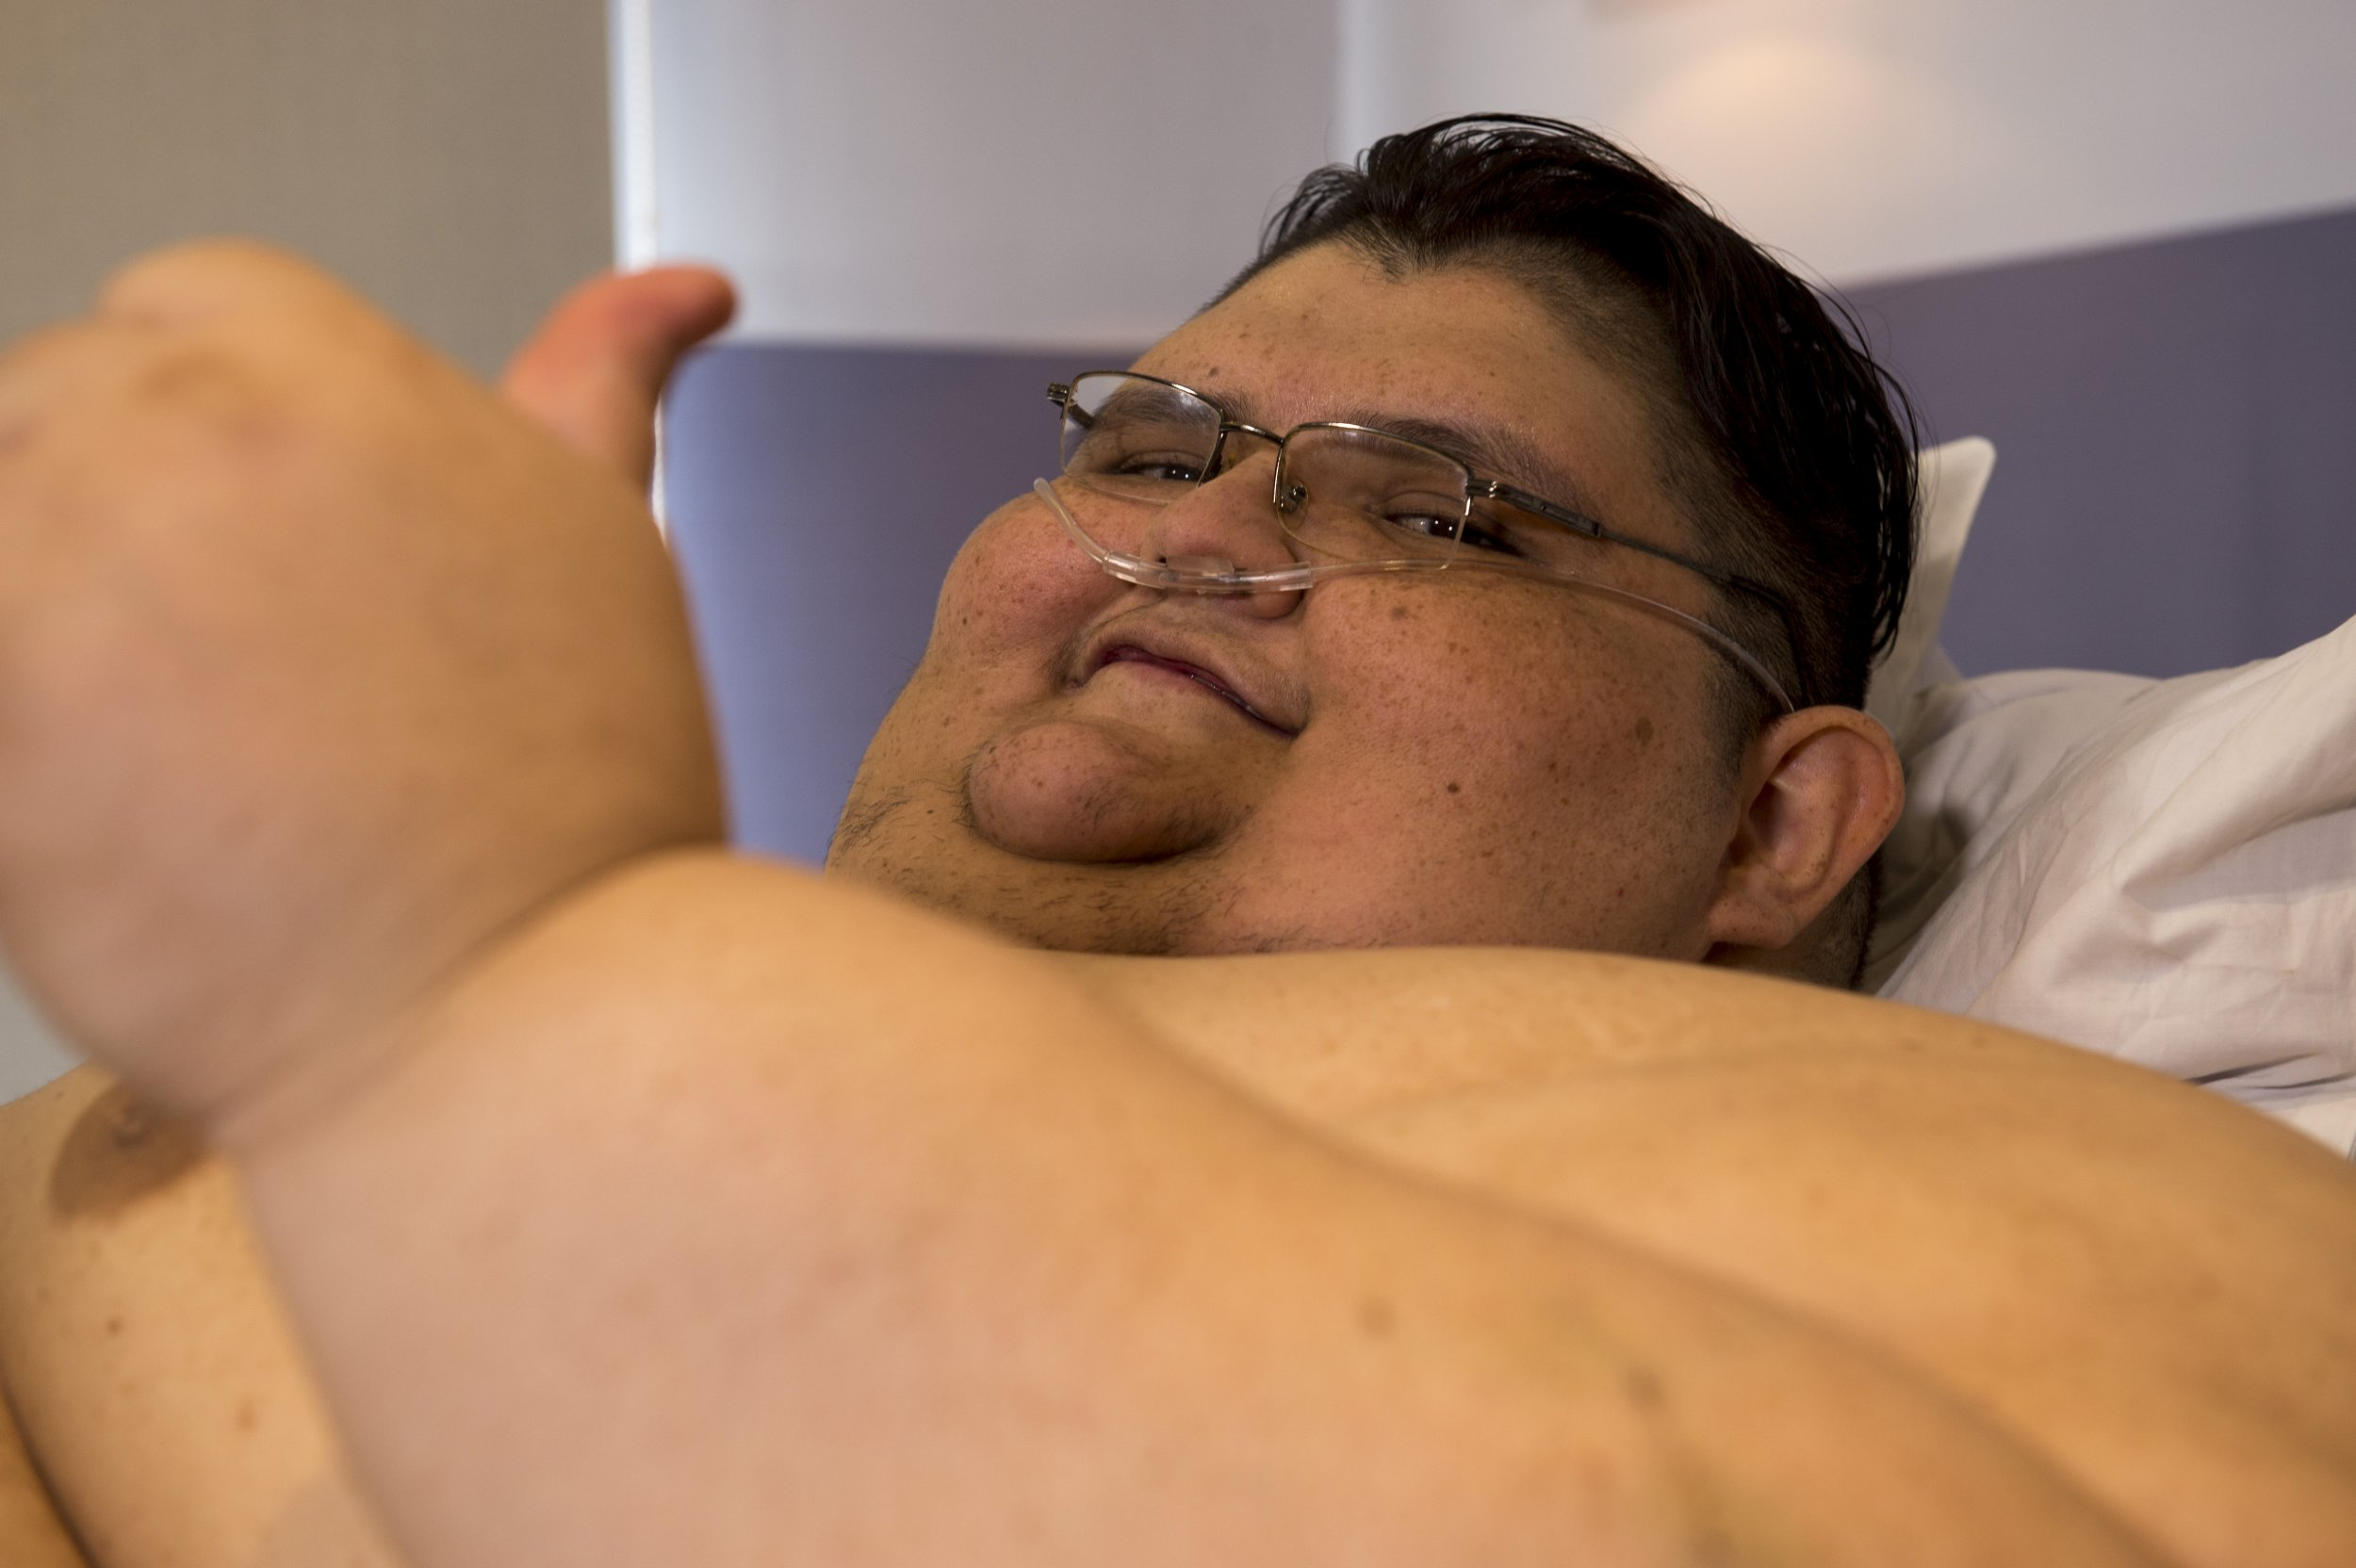 World S Once Heaviest Man Alive Loses Half His Body Weight Now Down To 600 Pounds